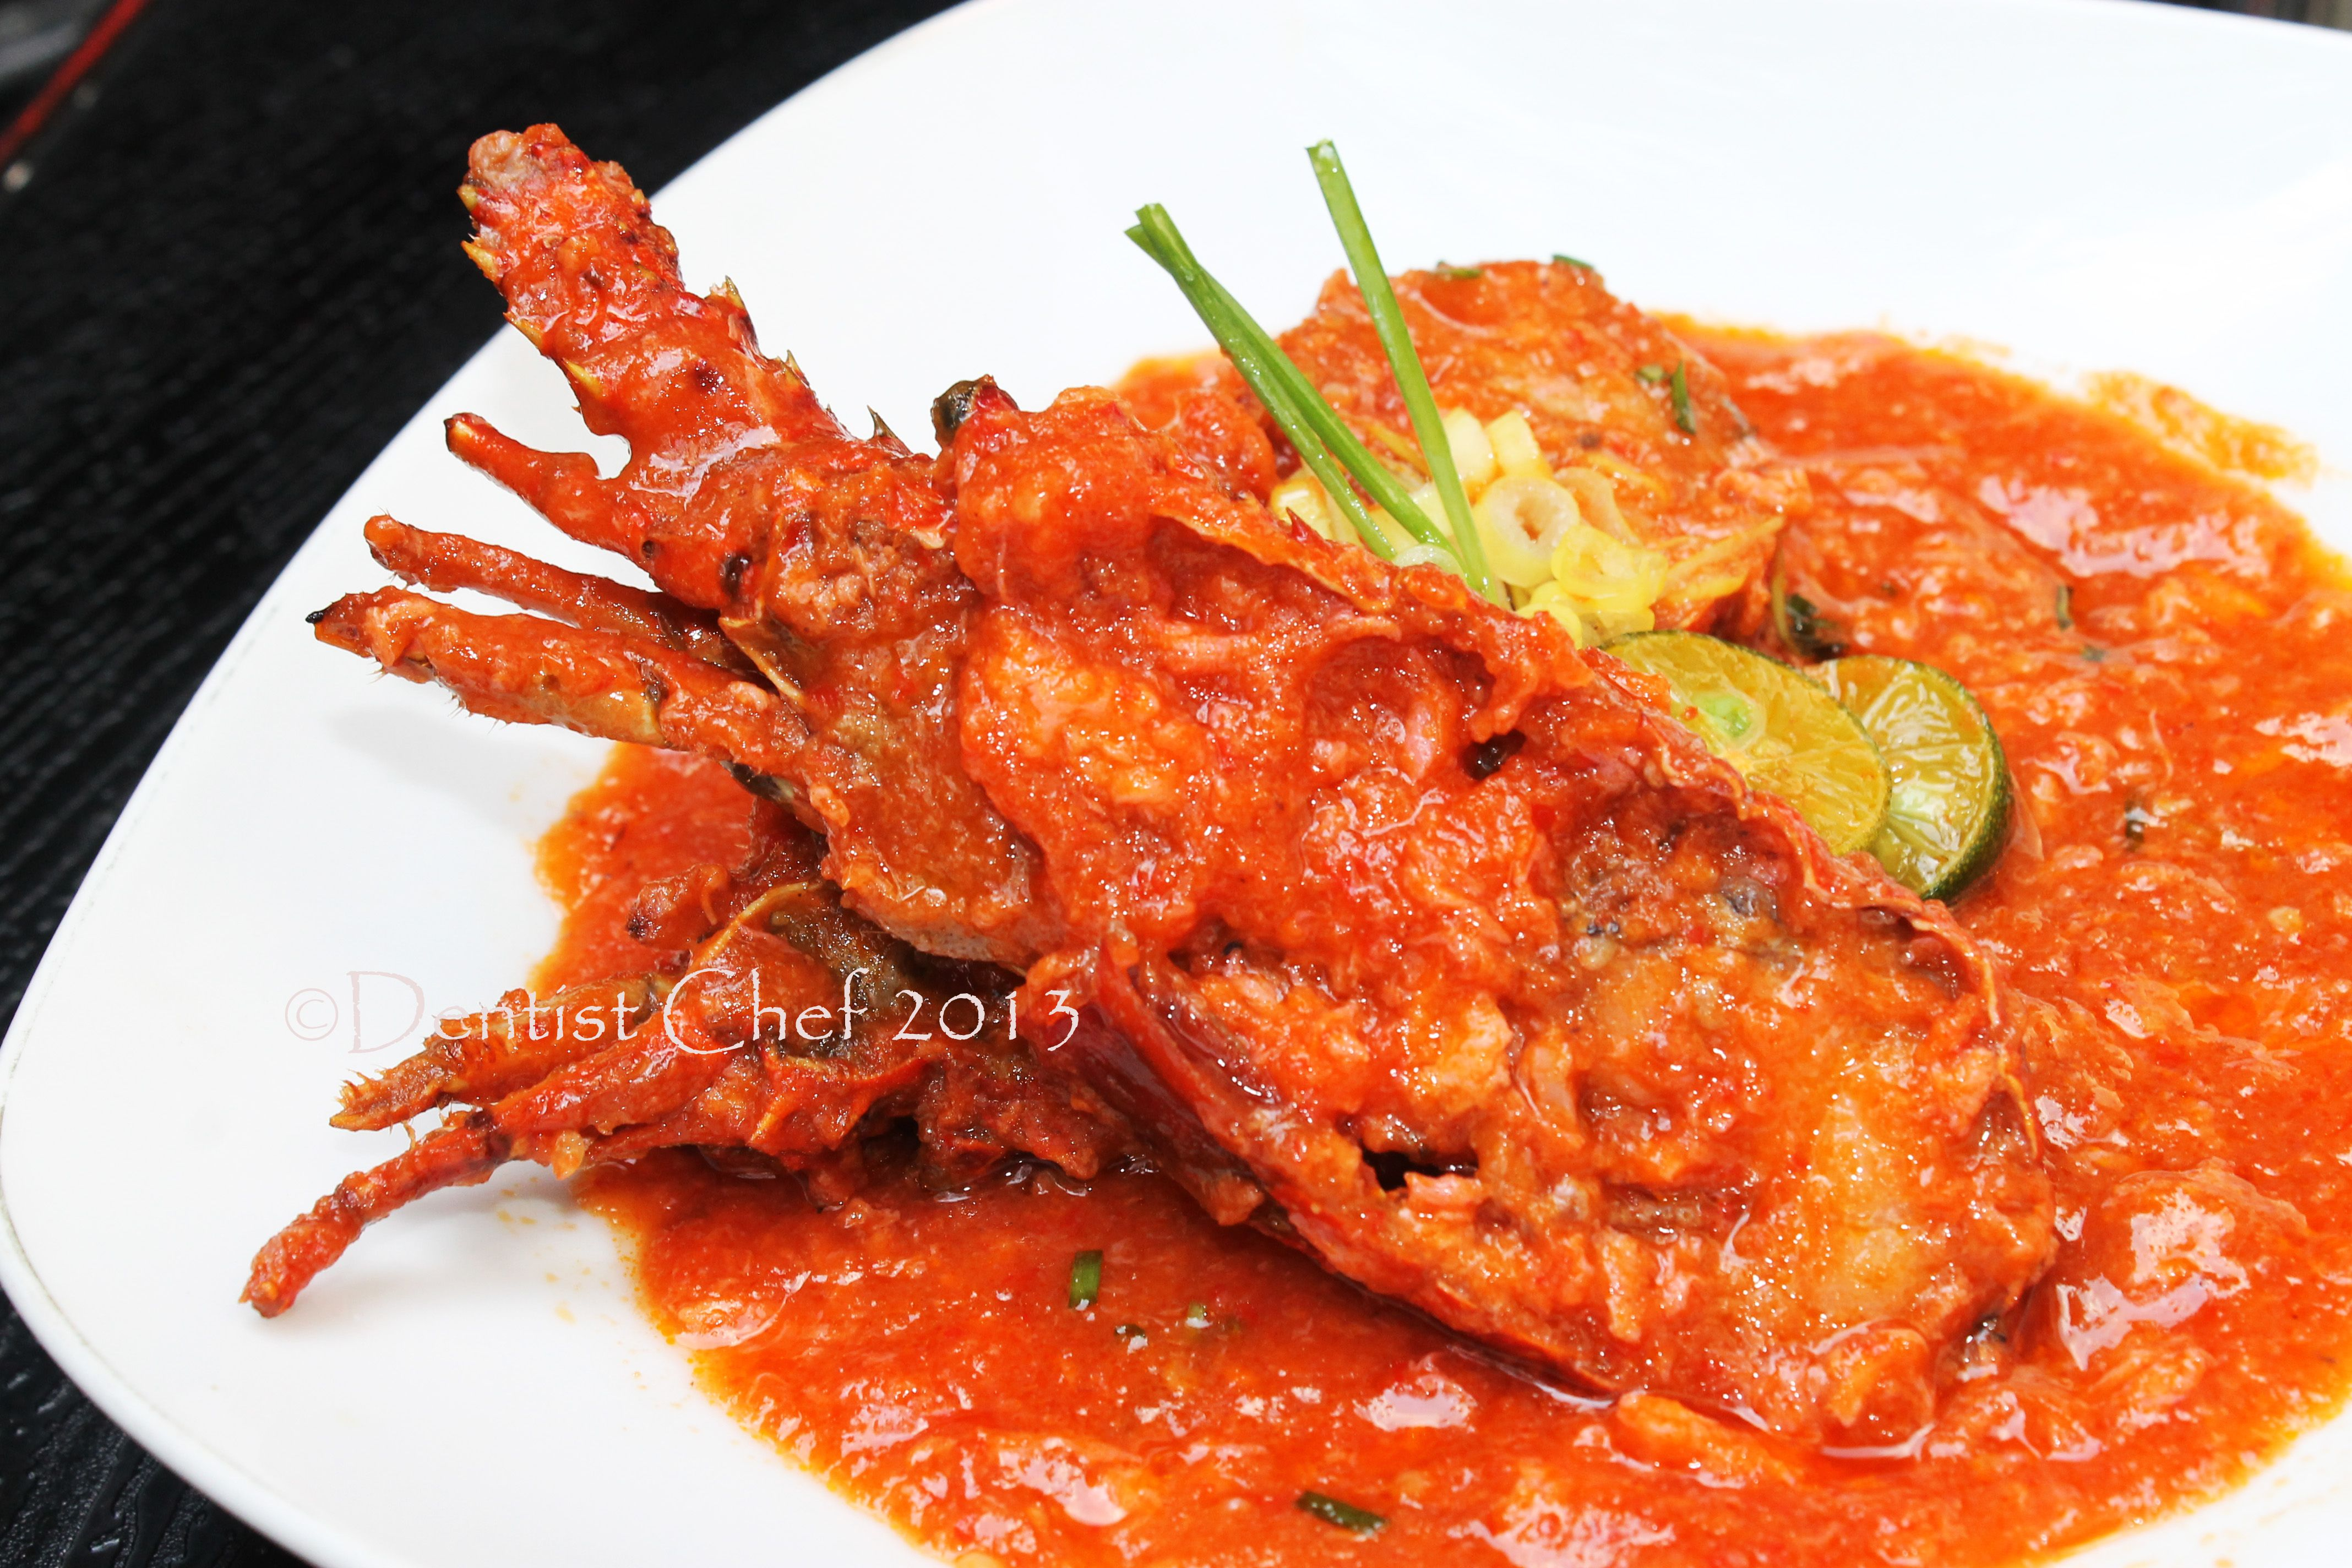 Lobster With Sweet And Sour Chili Sauce Recipe Resep Lobster Saus Asam Manis Ala Singapura Resep Lobster Resep Seafood Resep Makanan